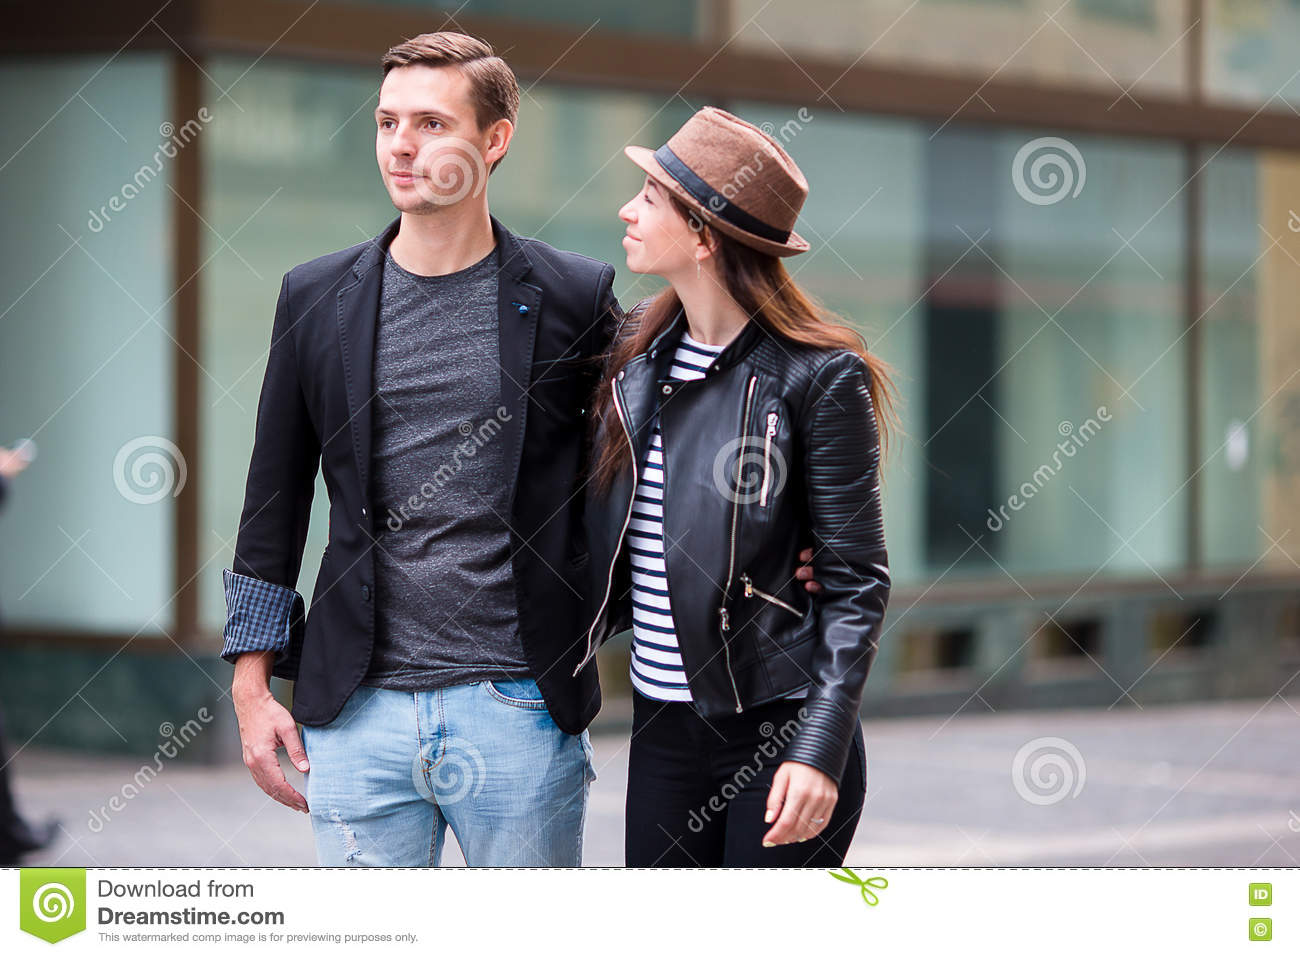 Happy couple walking in Europe. Smiling lovers enjoying cityscape with famous landmarks.